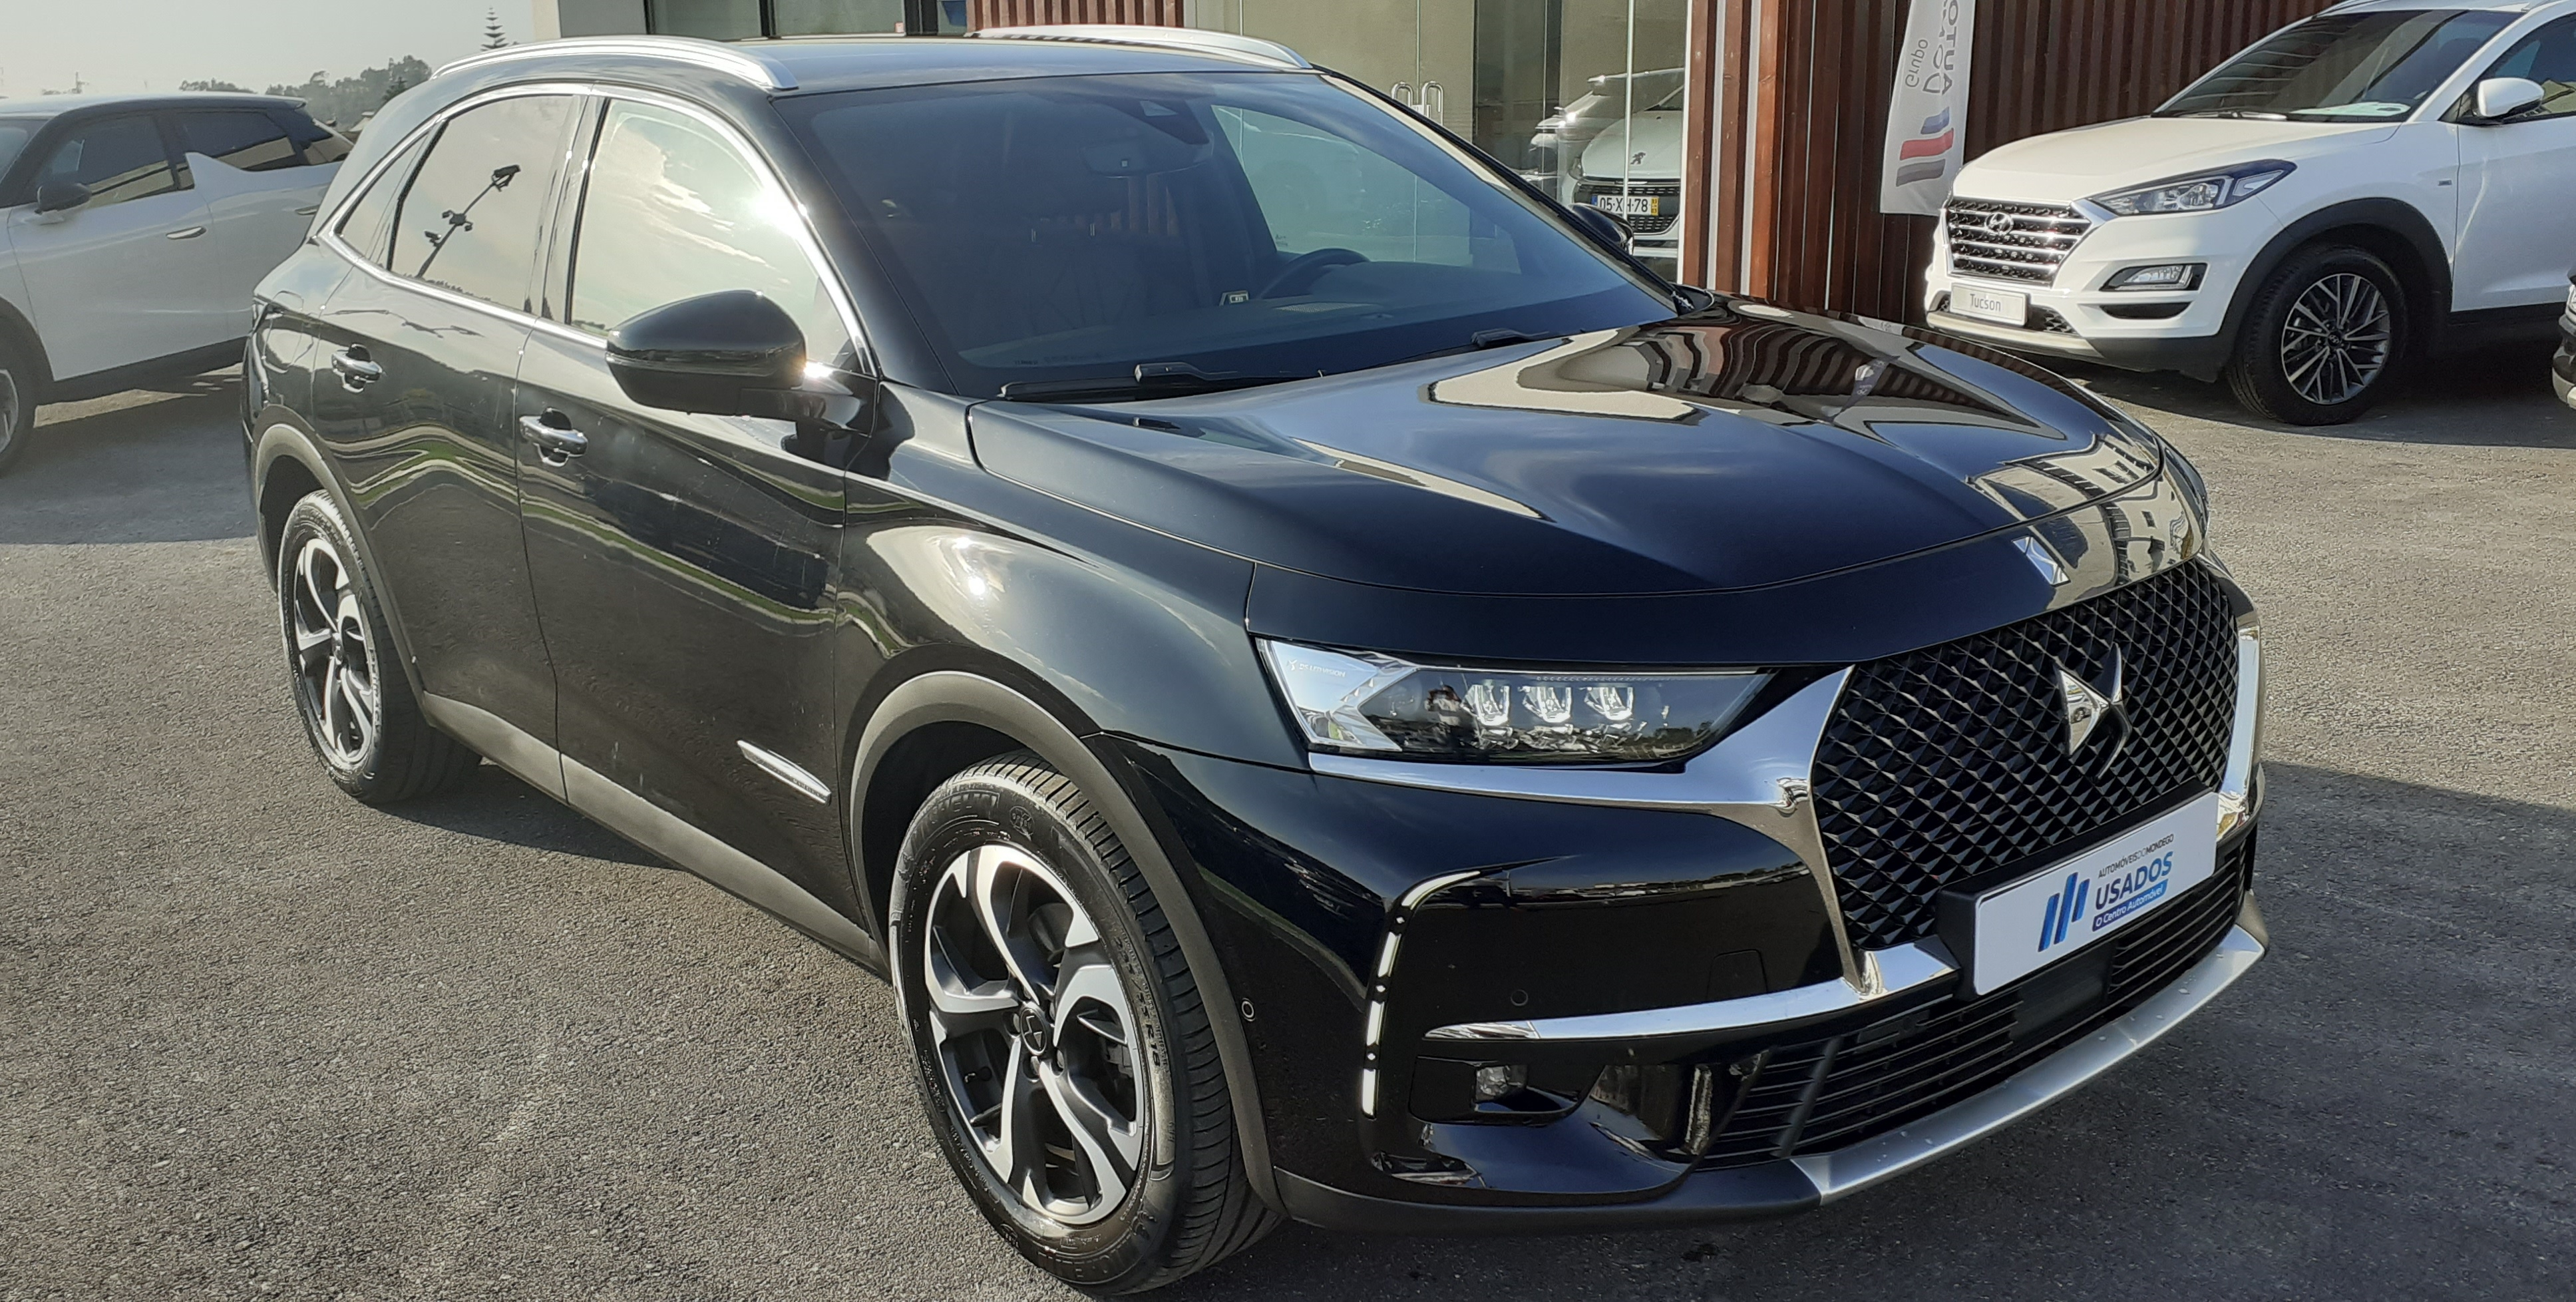 DS 7 CROSSBACK 1.5 BlueHDi 130 Automatic So Chic